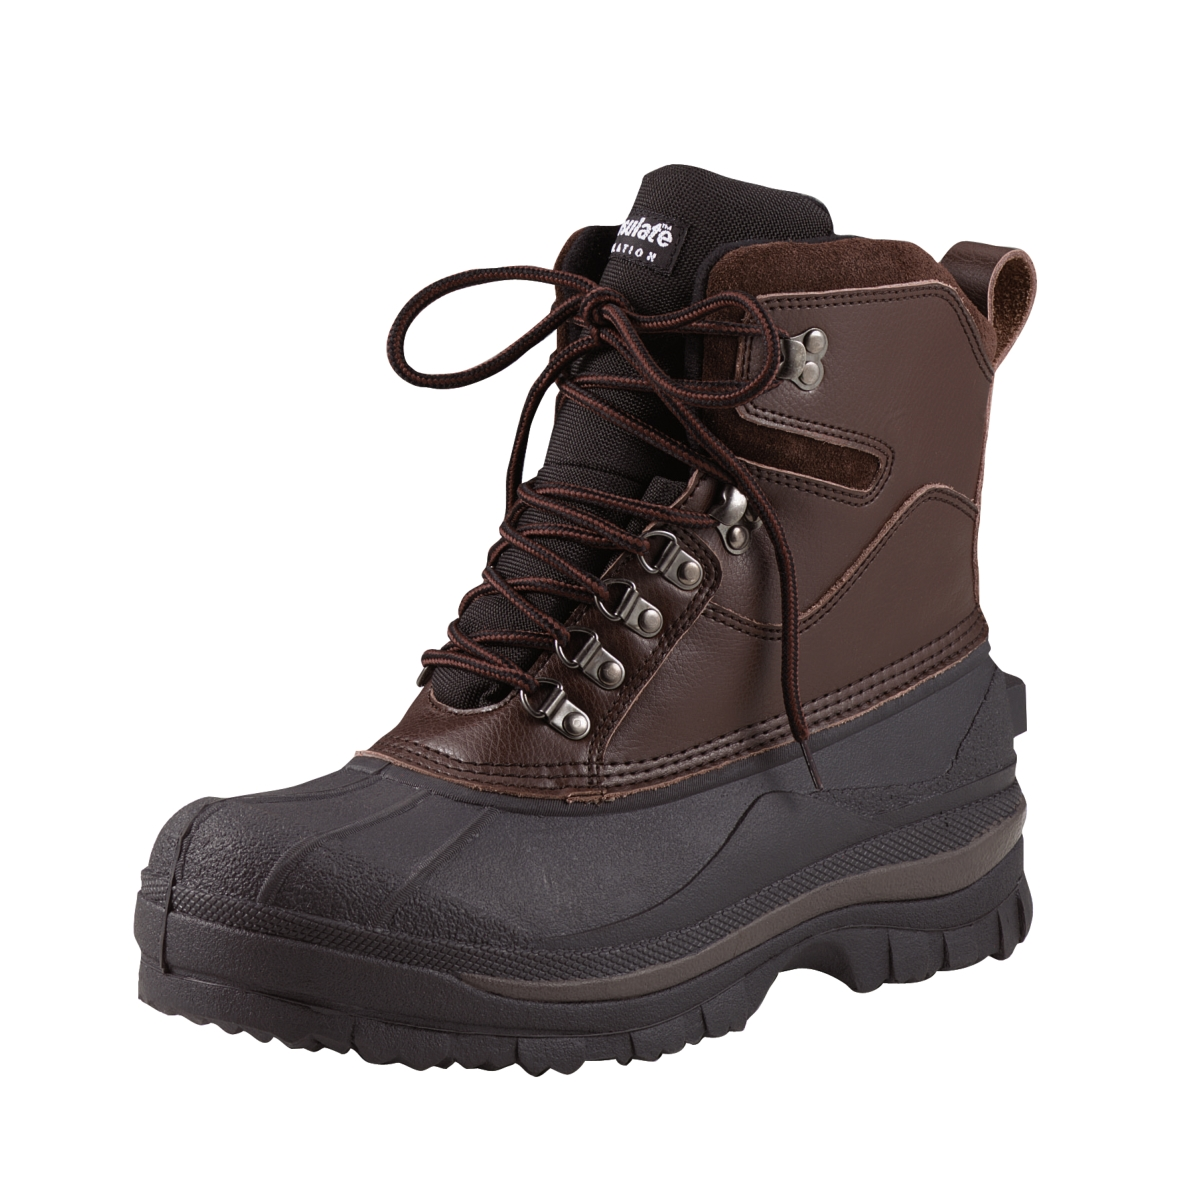 Thinsulate Waterproof Boots Sale: Save Up to 40% Off! Shop dvlnpxiuf.ga's huge selection of Thinsulate Waterproof Boots - Over styles available. FREE Shipping & .